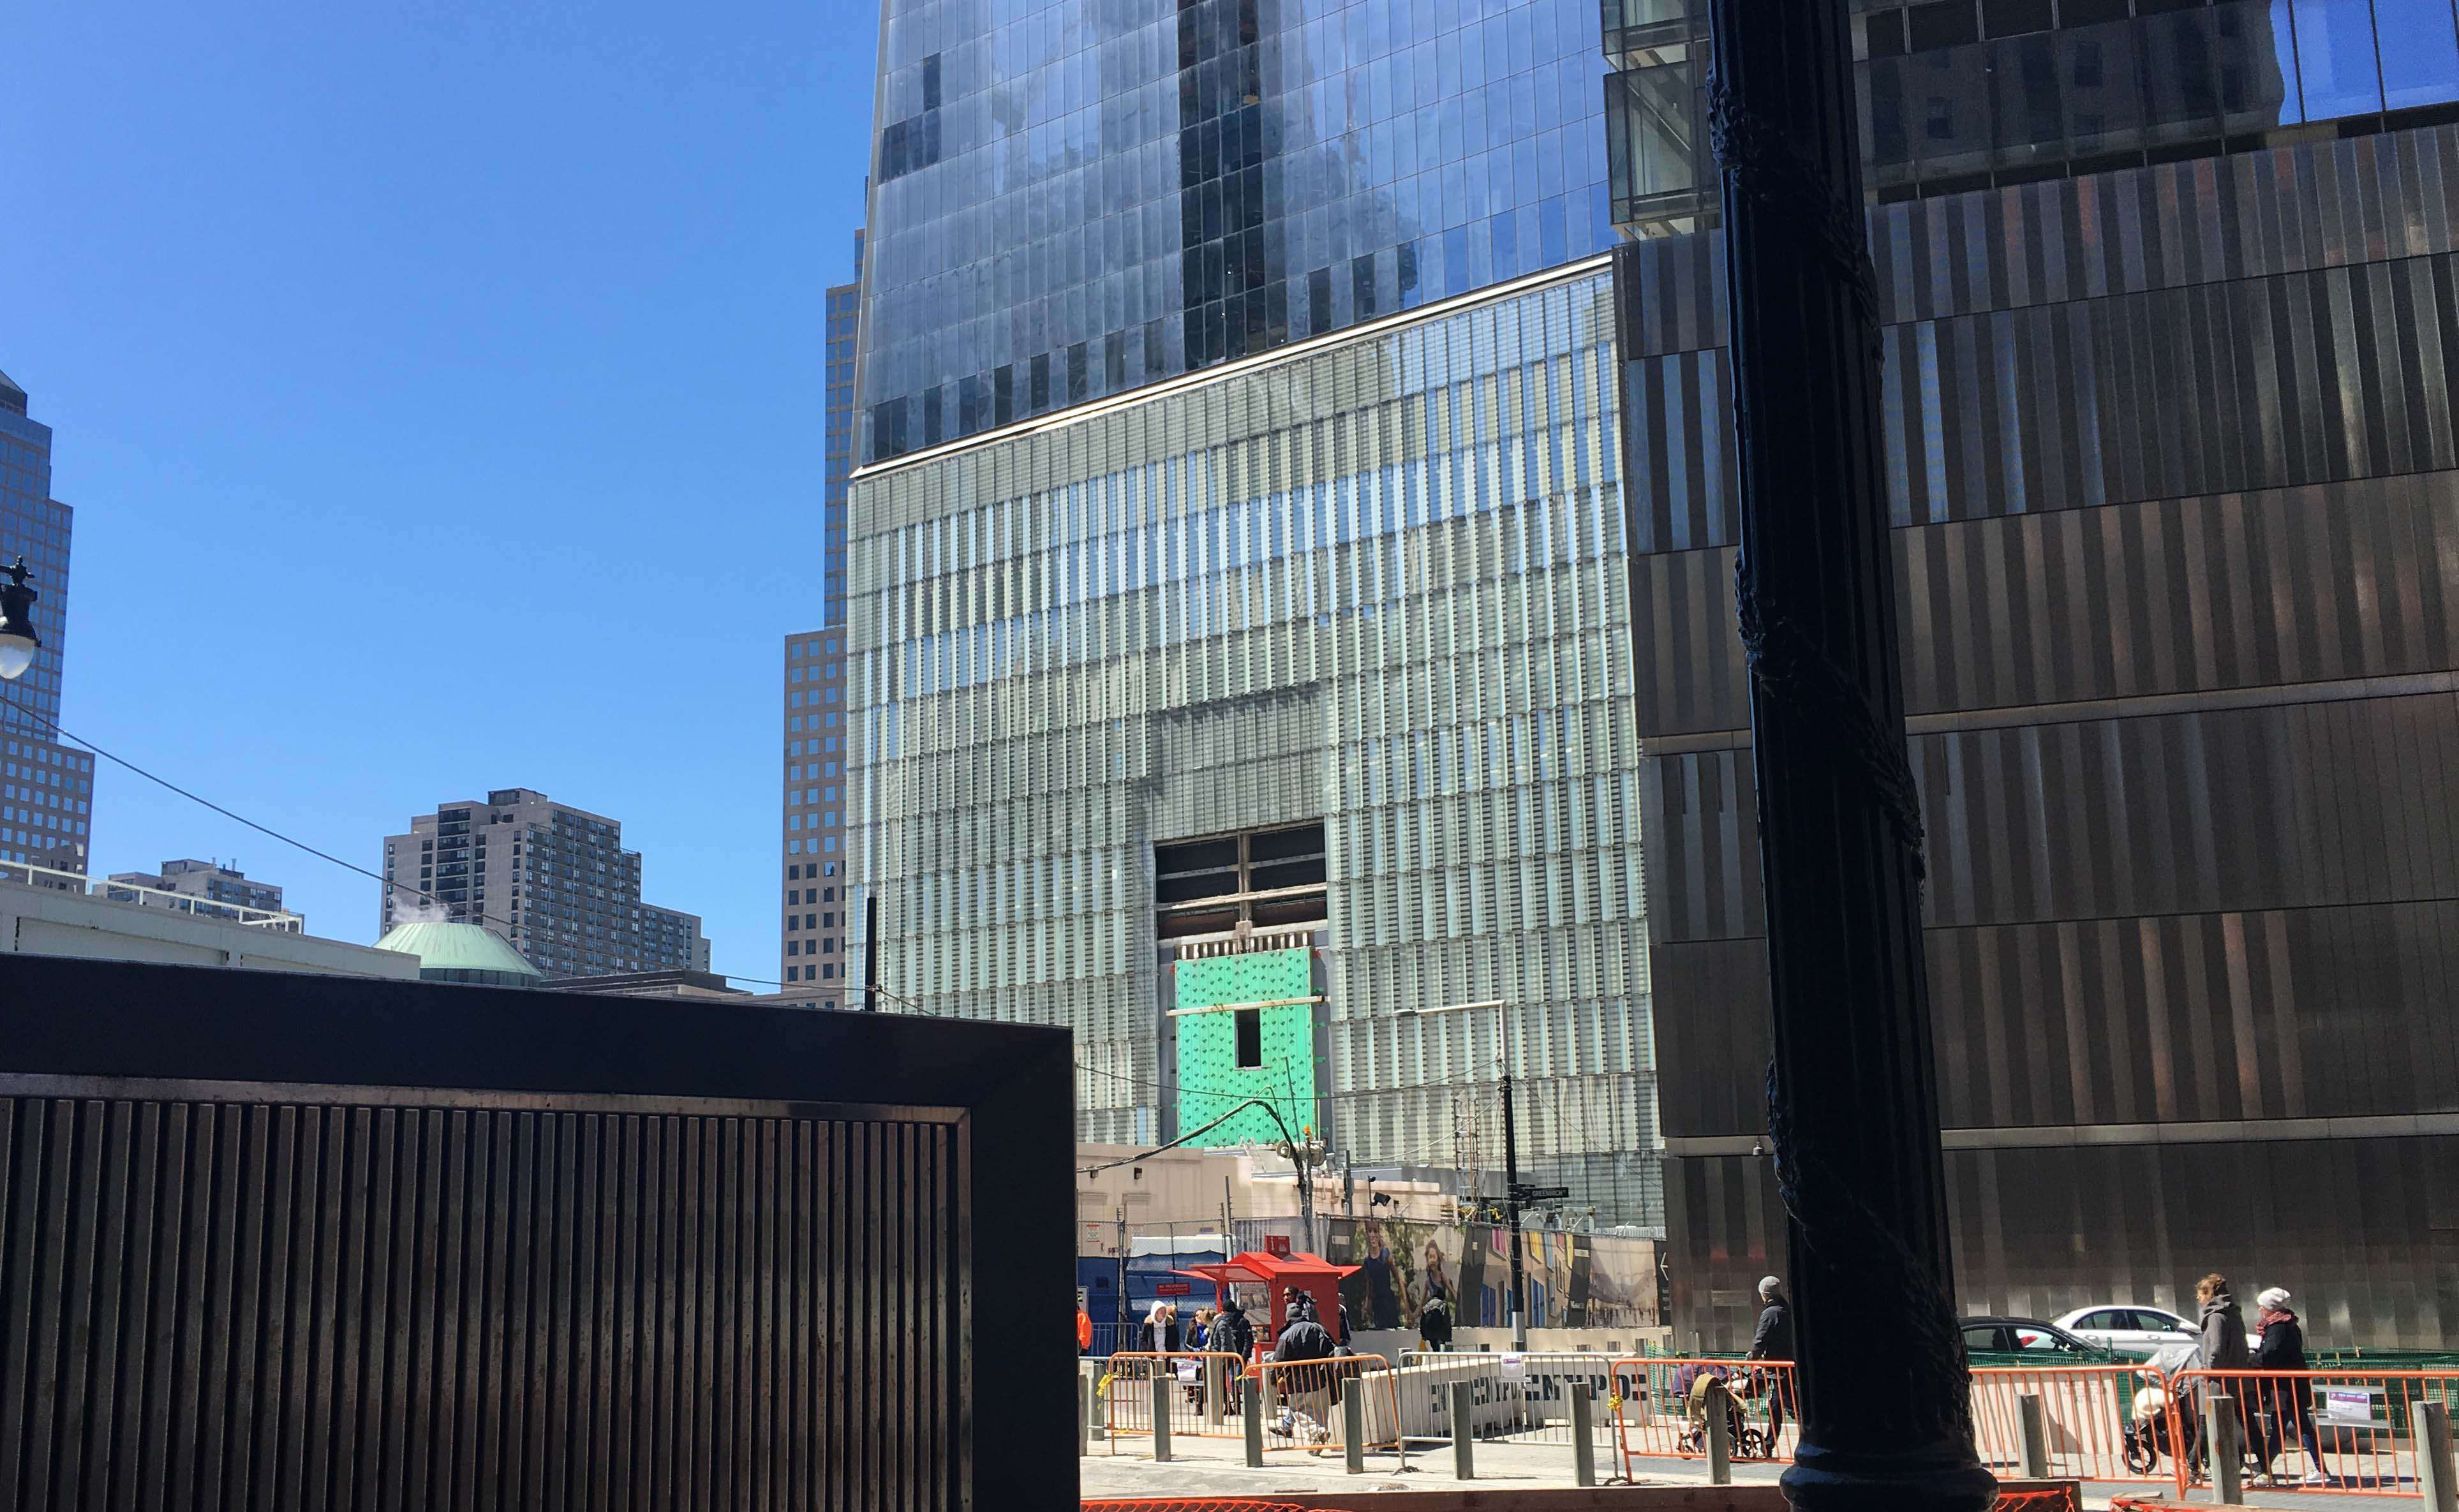 temp loading dock to One World Trace Center 1WTC